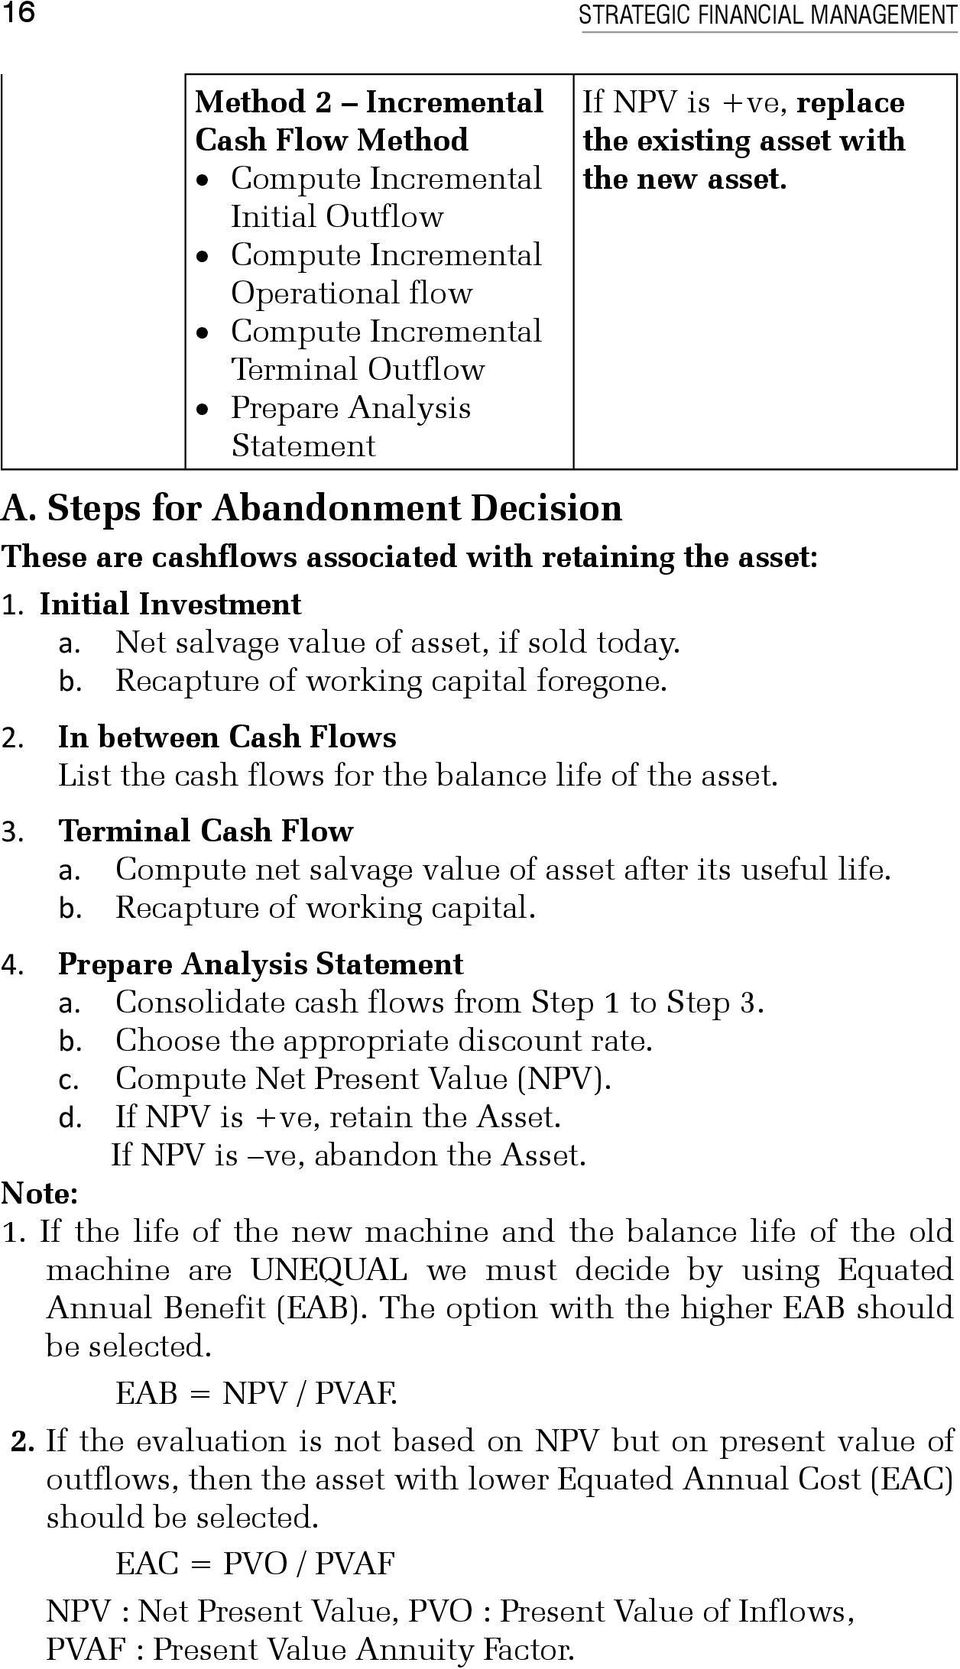 Net salvage value of asset, if sold today. b. Recapture of working capital foregone. 2. In between Cash Flows List the cash flows for the balance life of the asset. 3. Terminal Cash Flow a.